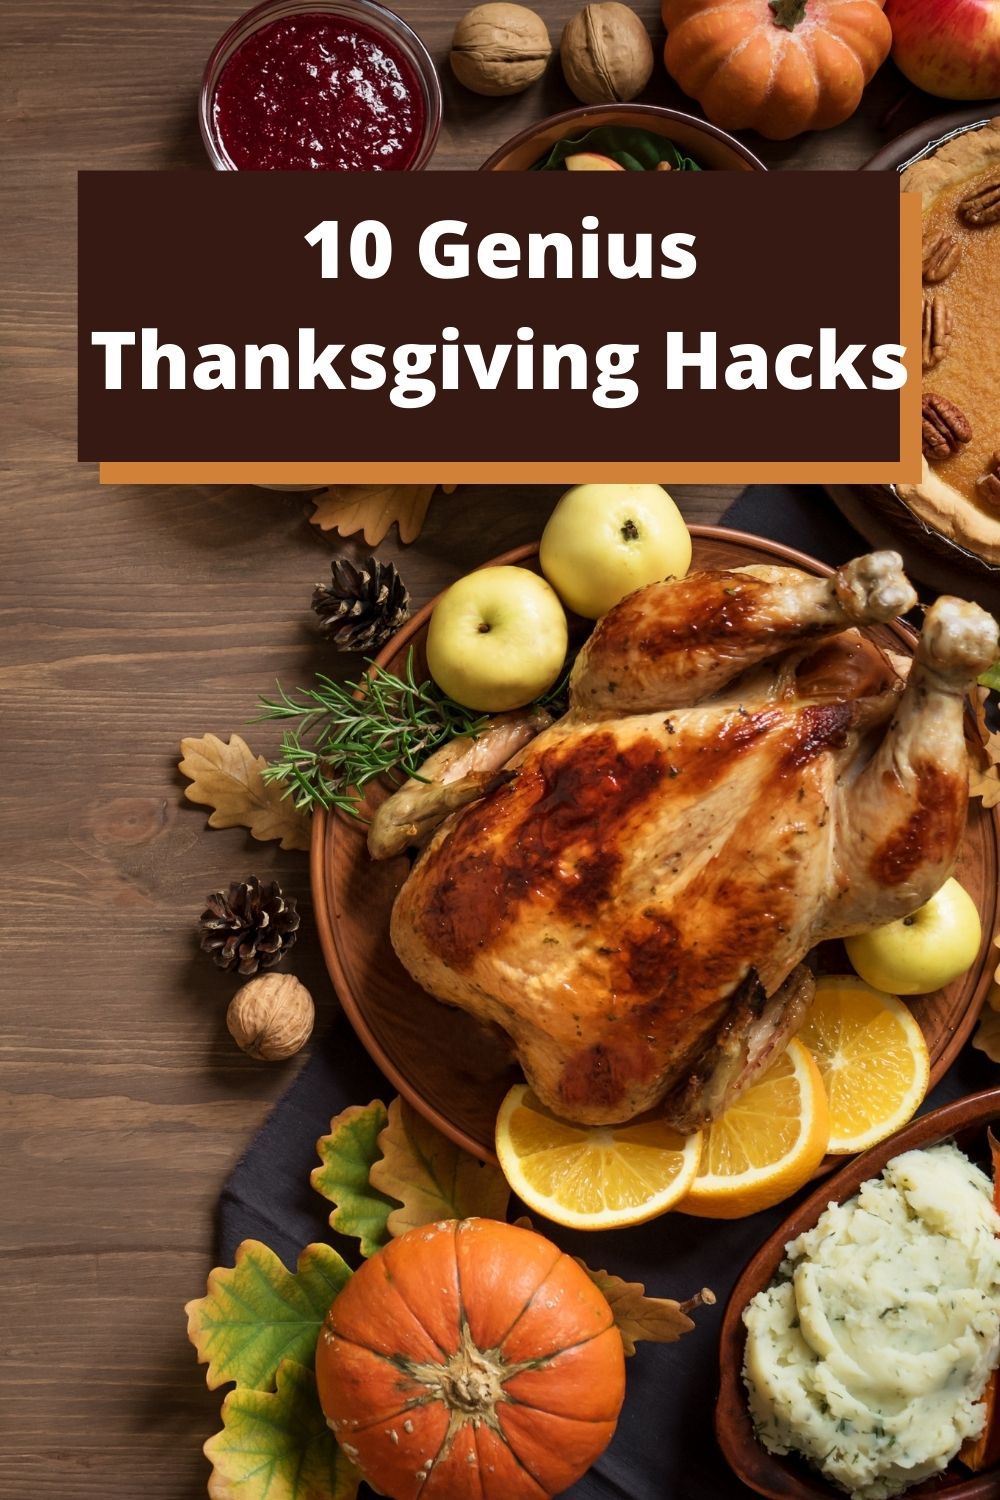 A table full of Thanksgiving food for a post about first thanksgiving dinner hacks that will keep you sane on the big day.